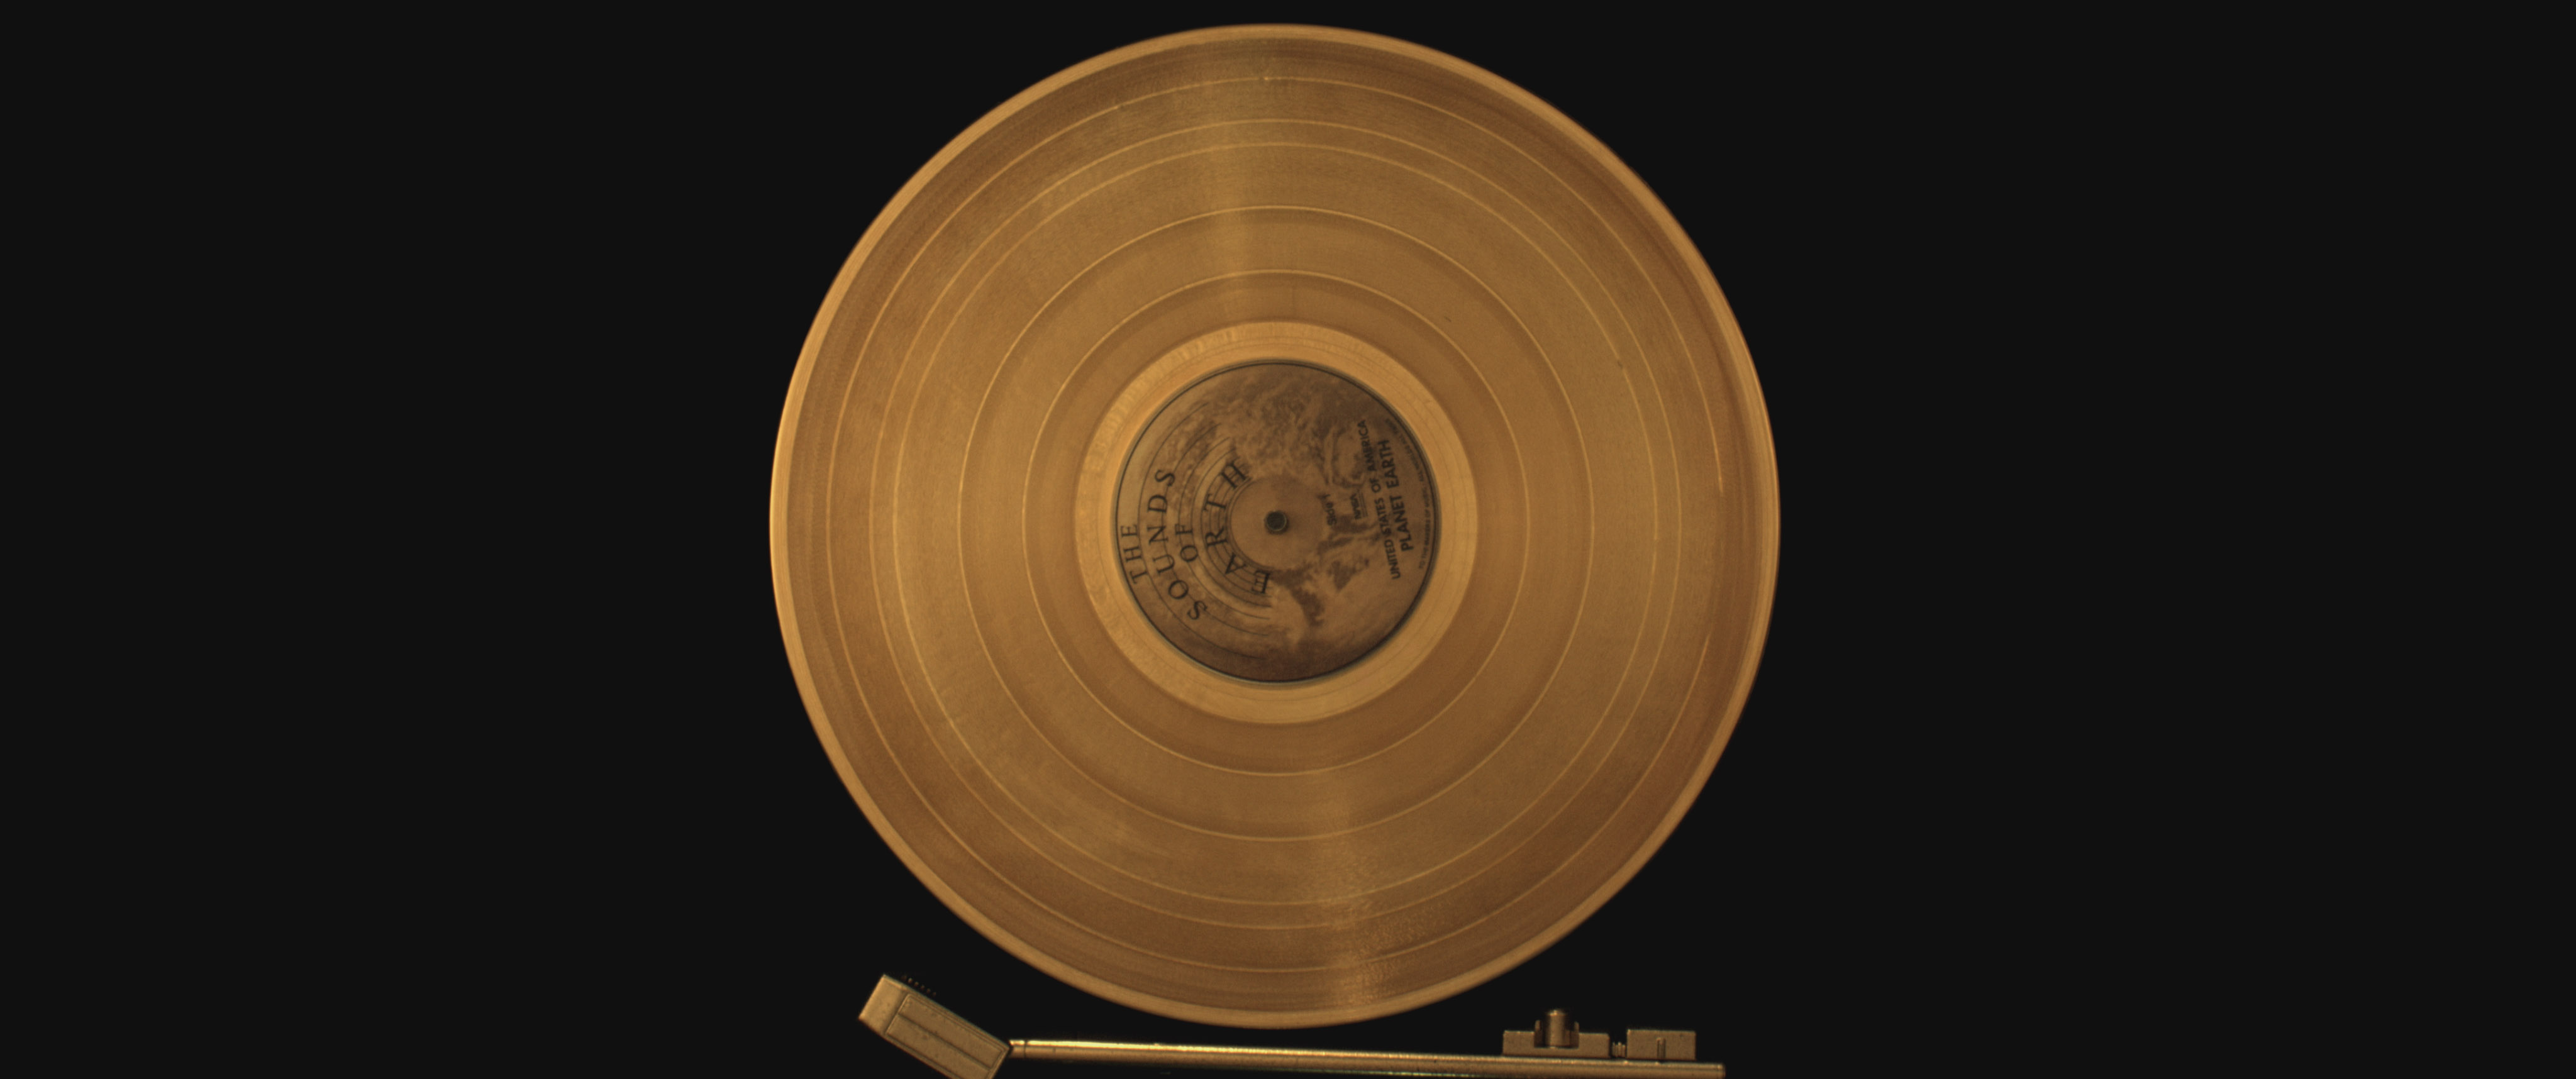 Golden_Record_02534806